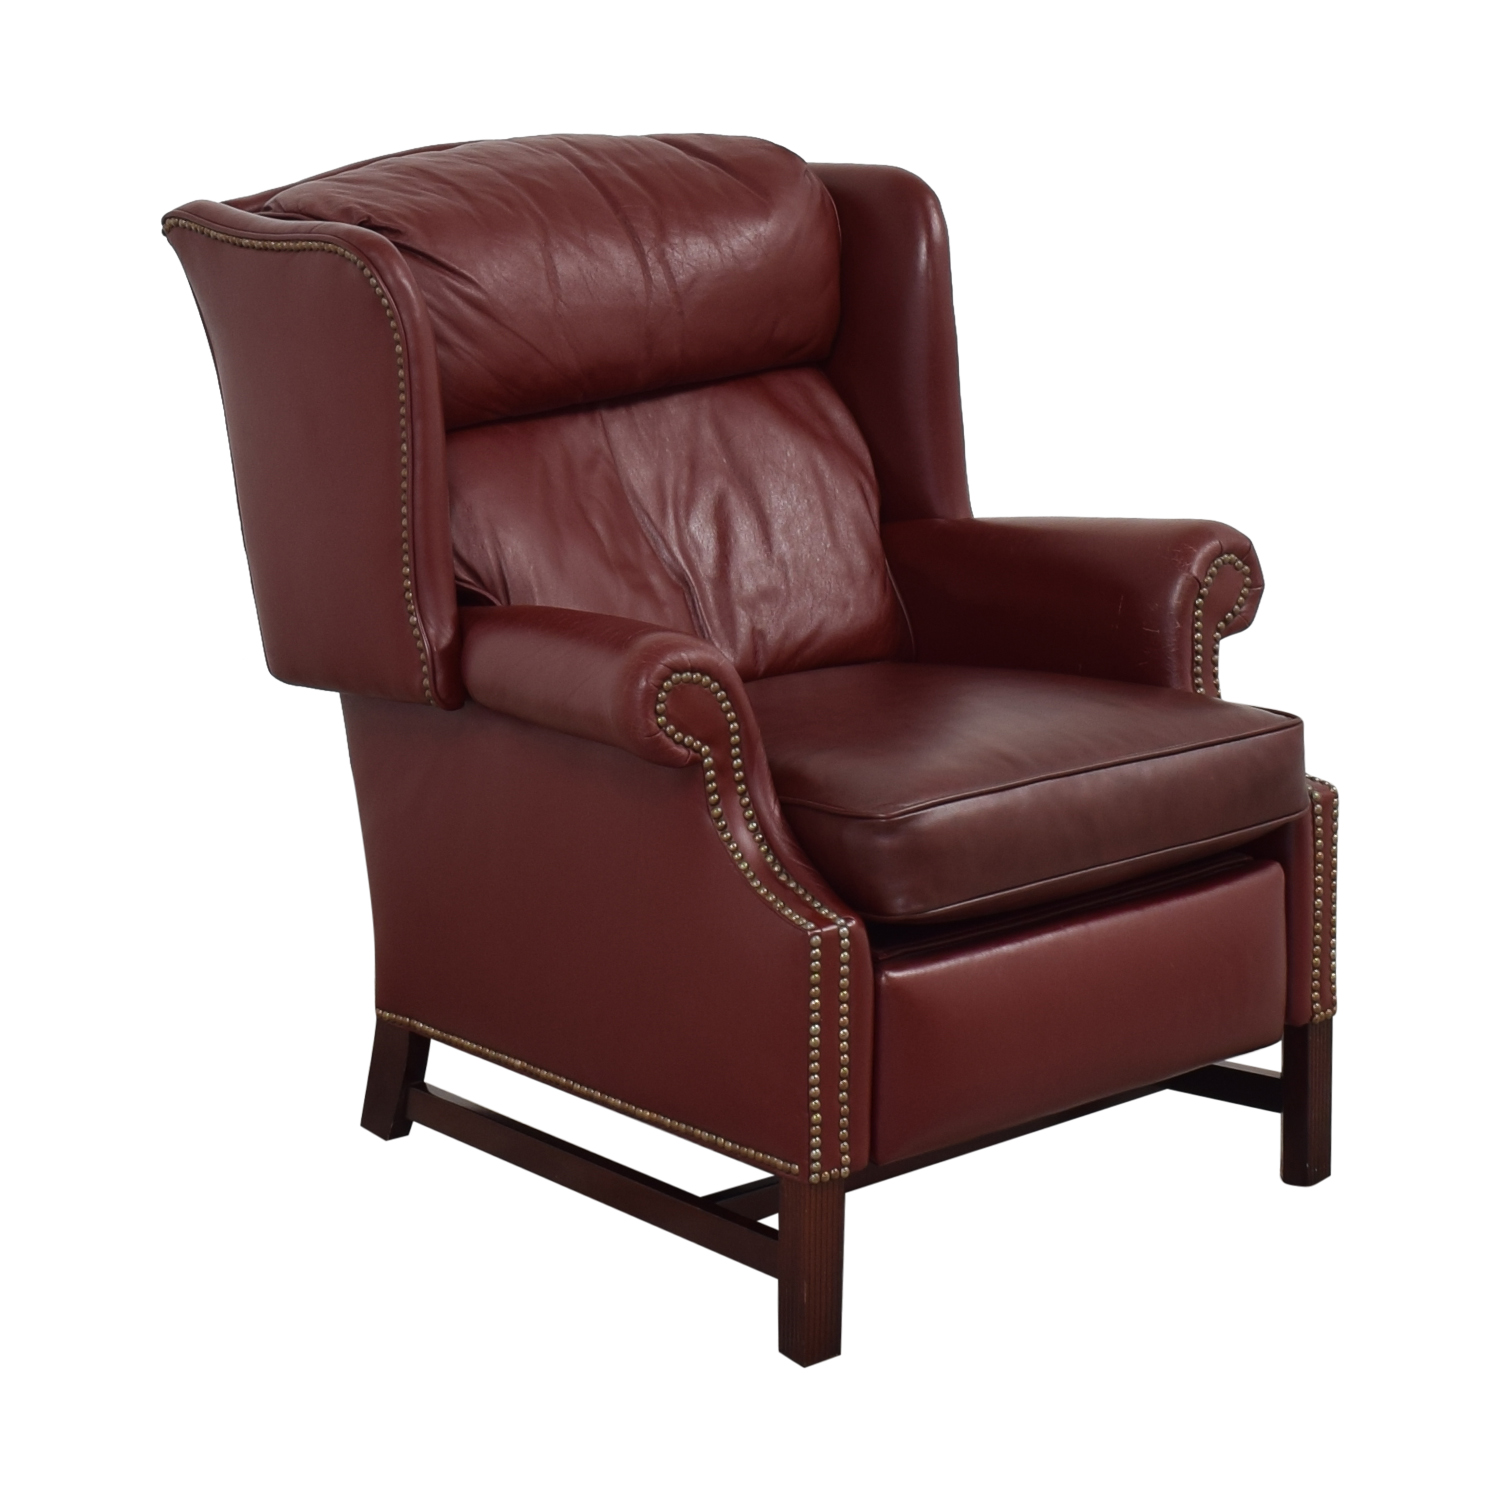 Classic Leather Classic Leather Recliner Chair nyc